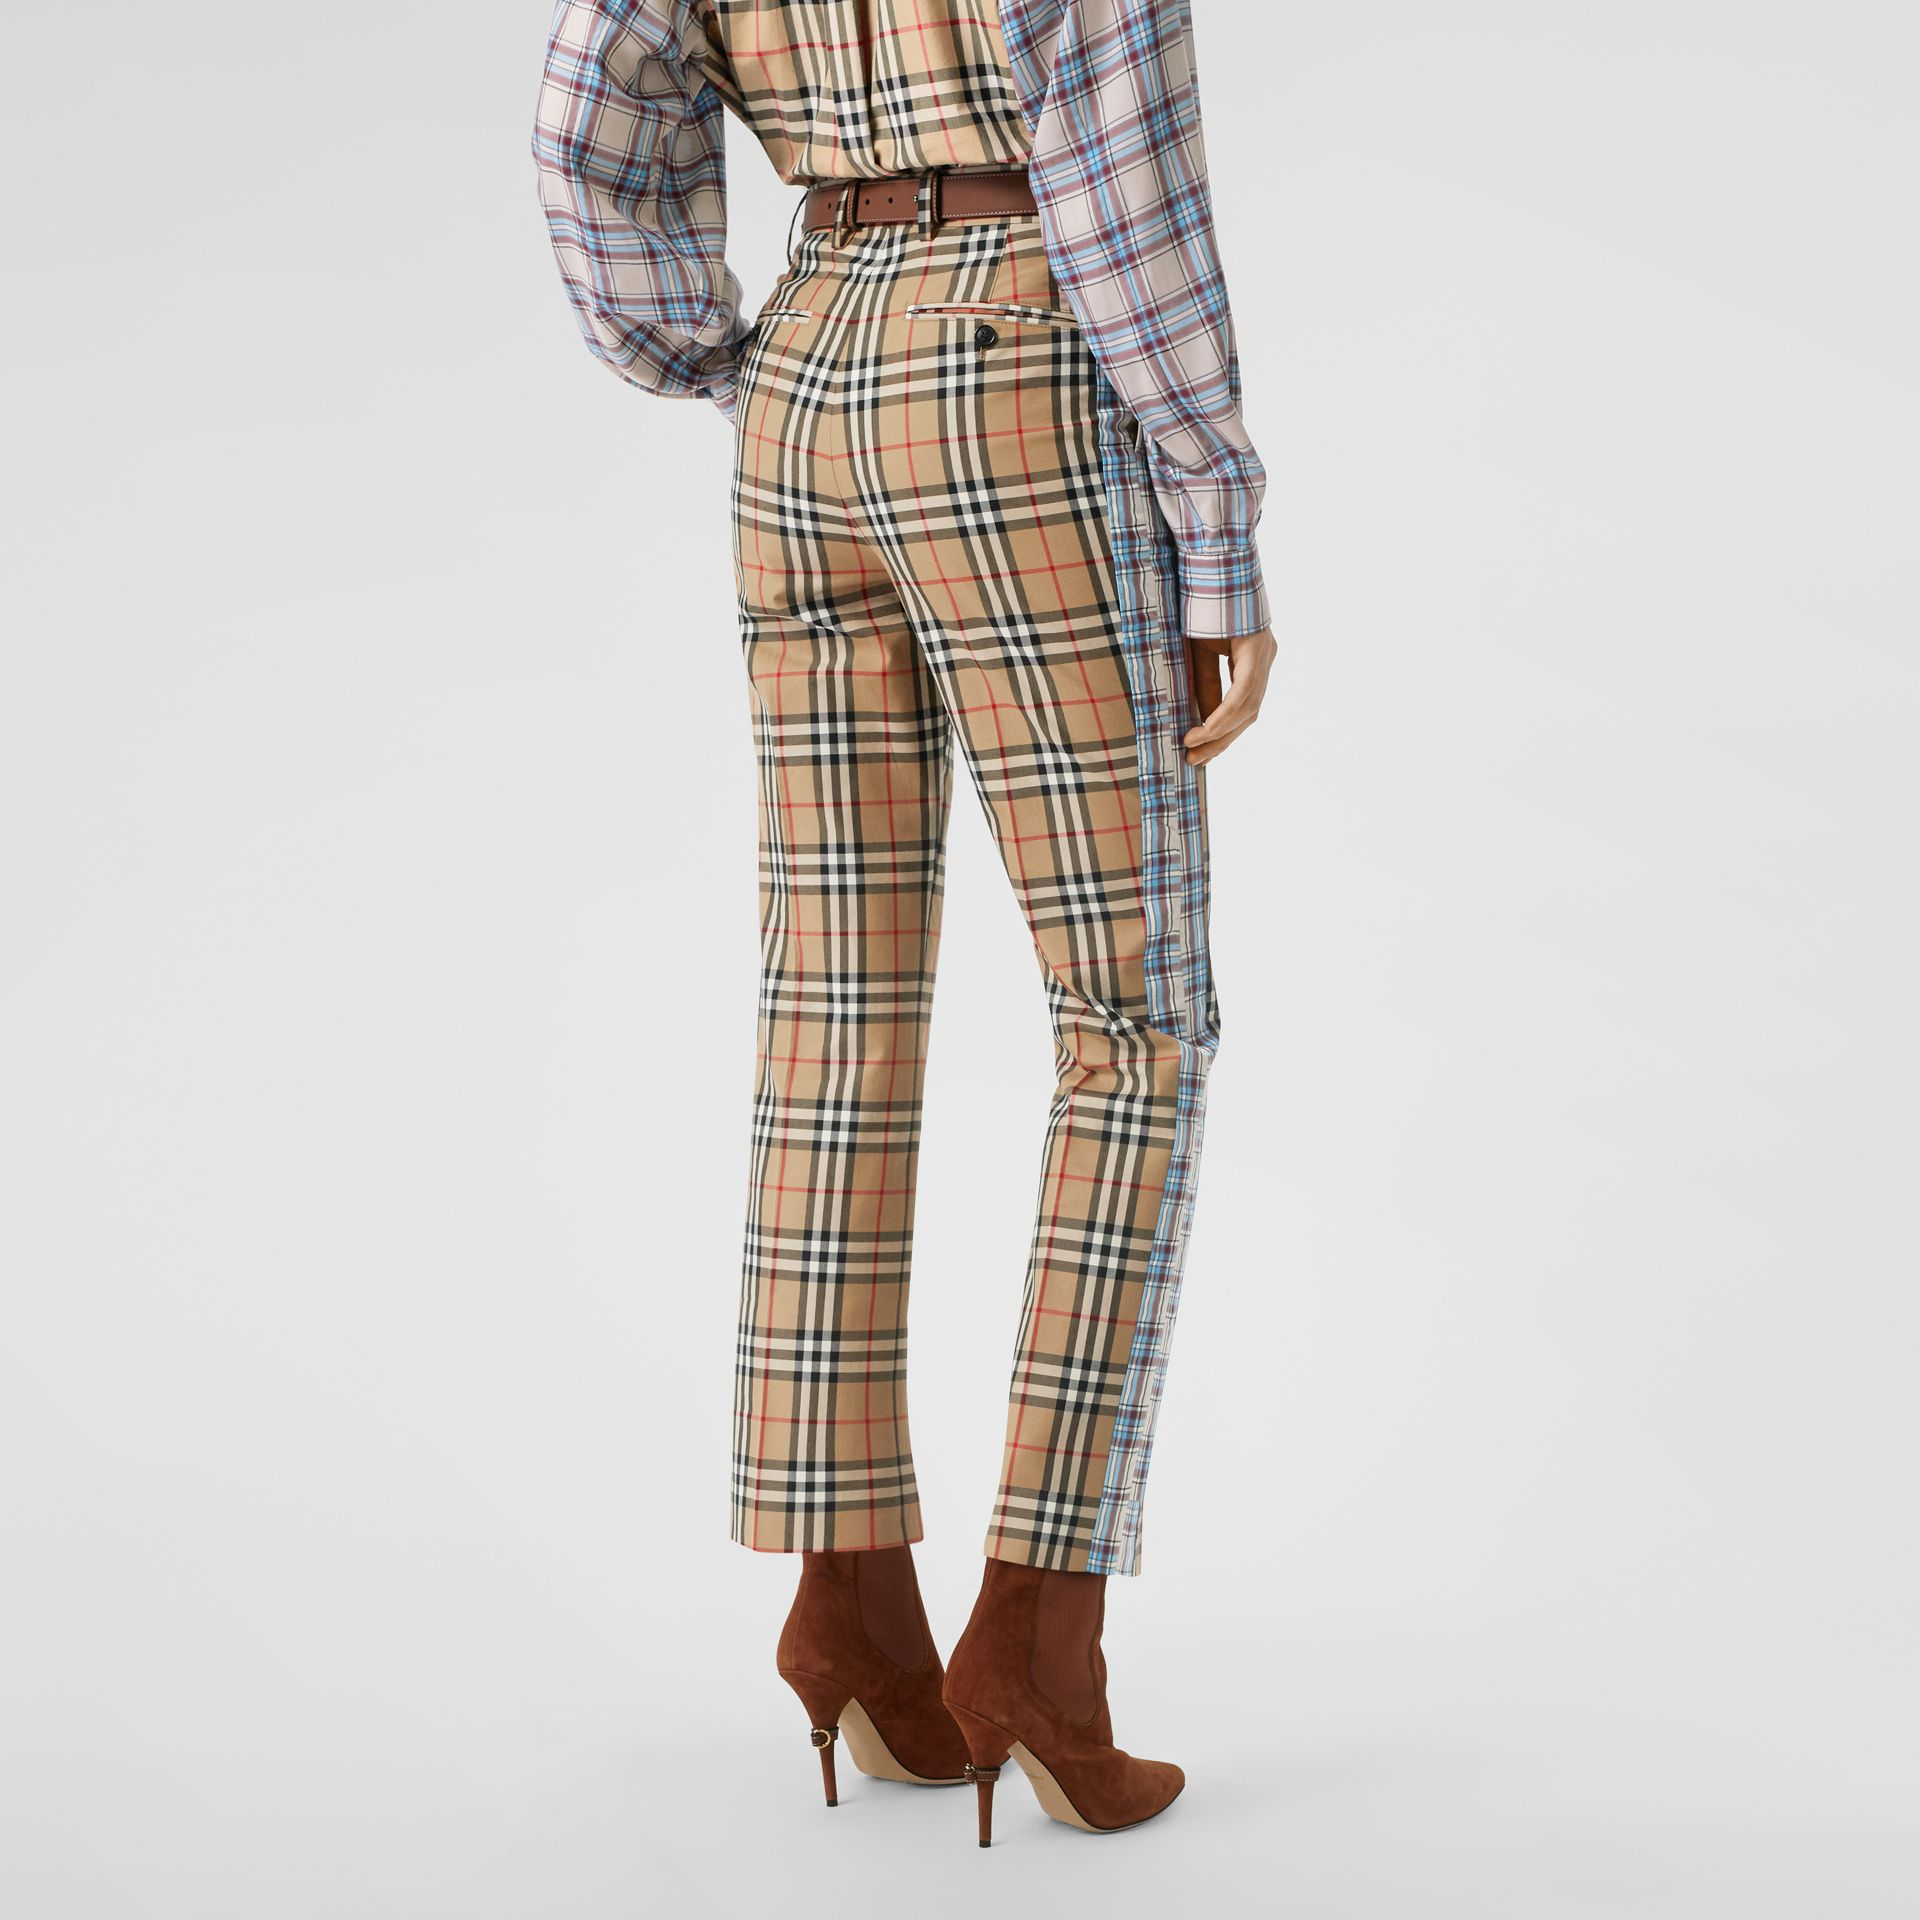 Pantalon droit en coton check (Beige D'archive) - Femme | Burberry - photo de la galerie 2